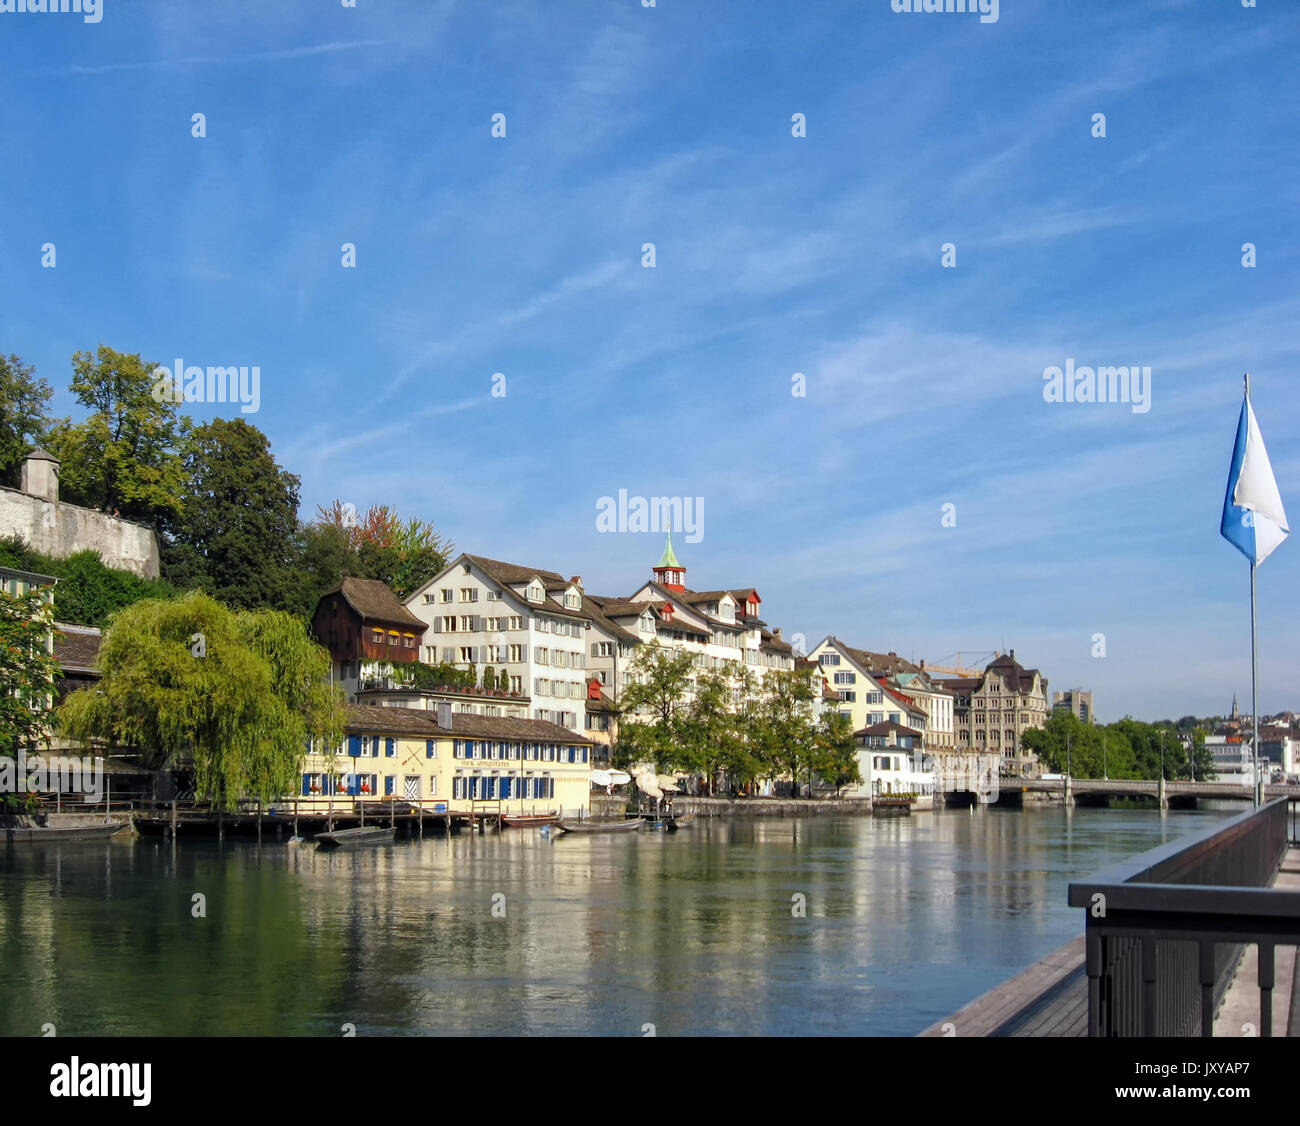 A view of the Limmat River in the center of Zurich Switzerland. - Stock Image